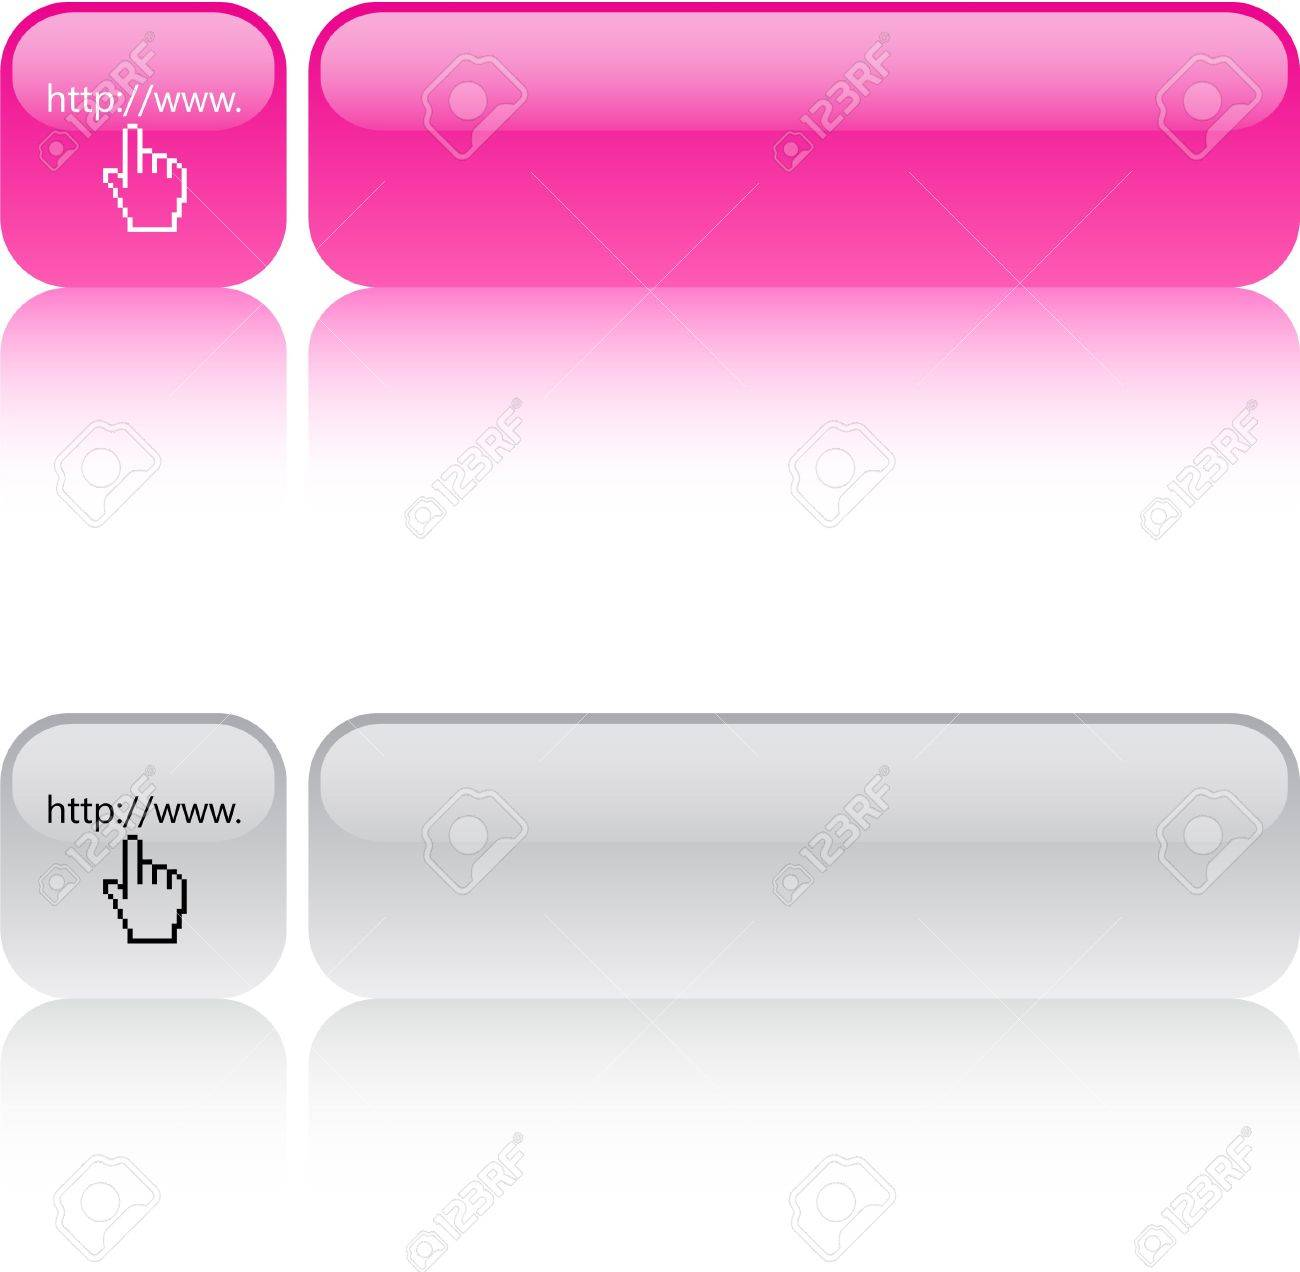 Www click glossy square web buttons. Stock Vector - 7470103